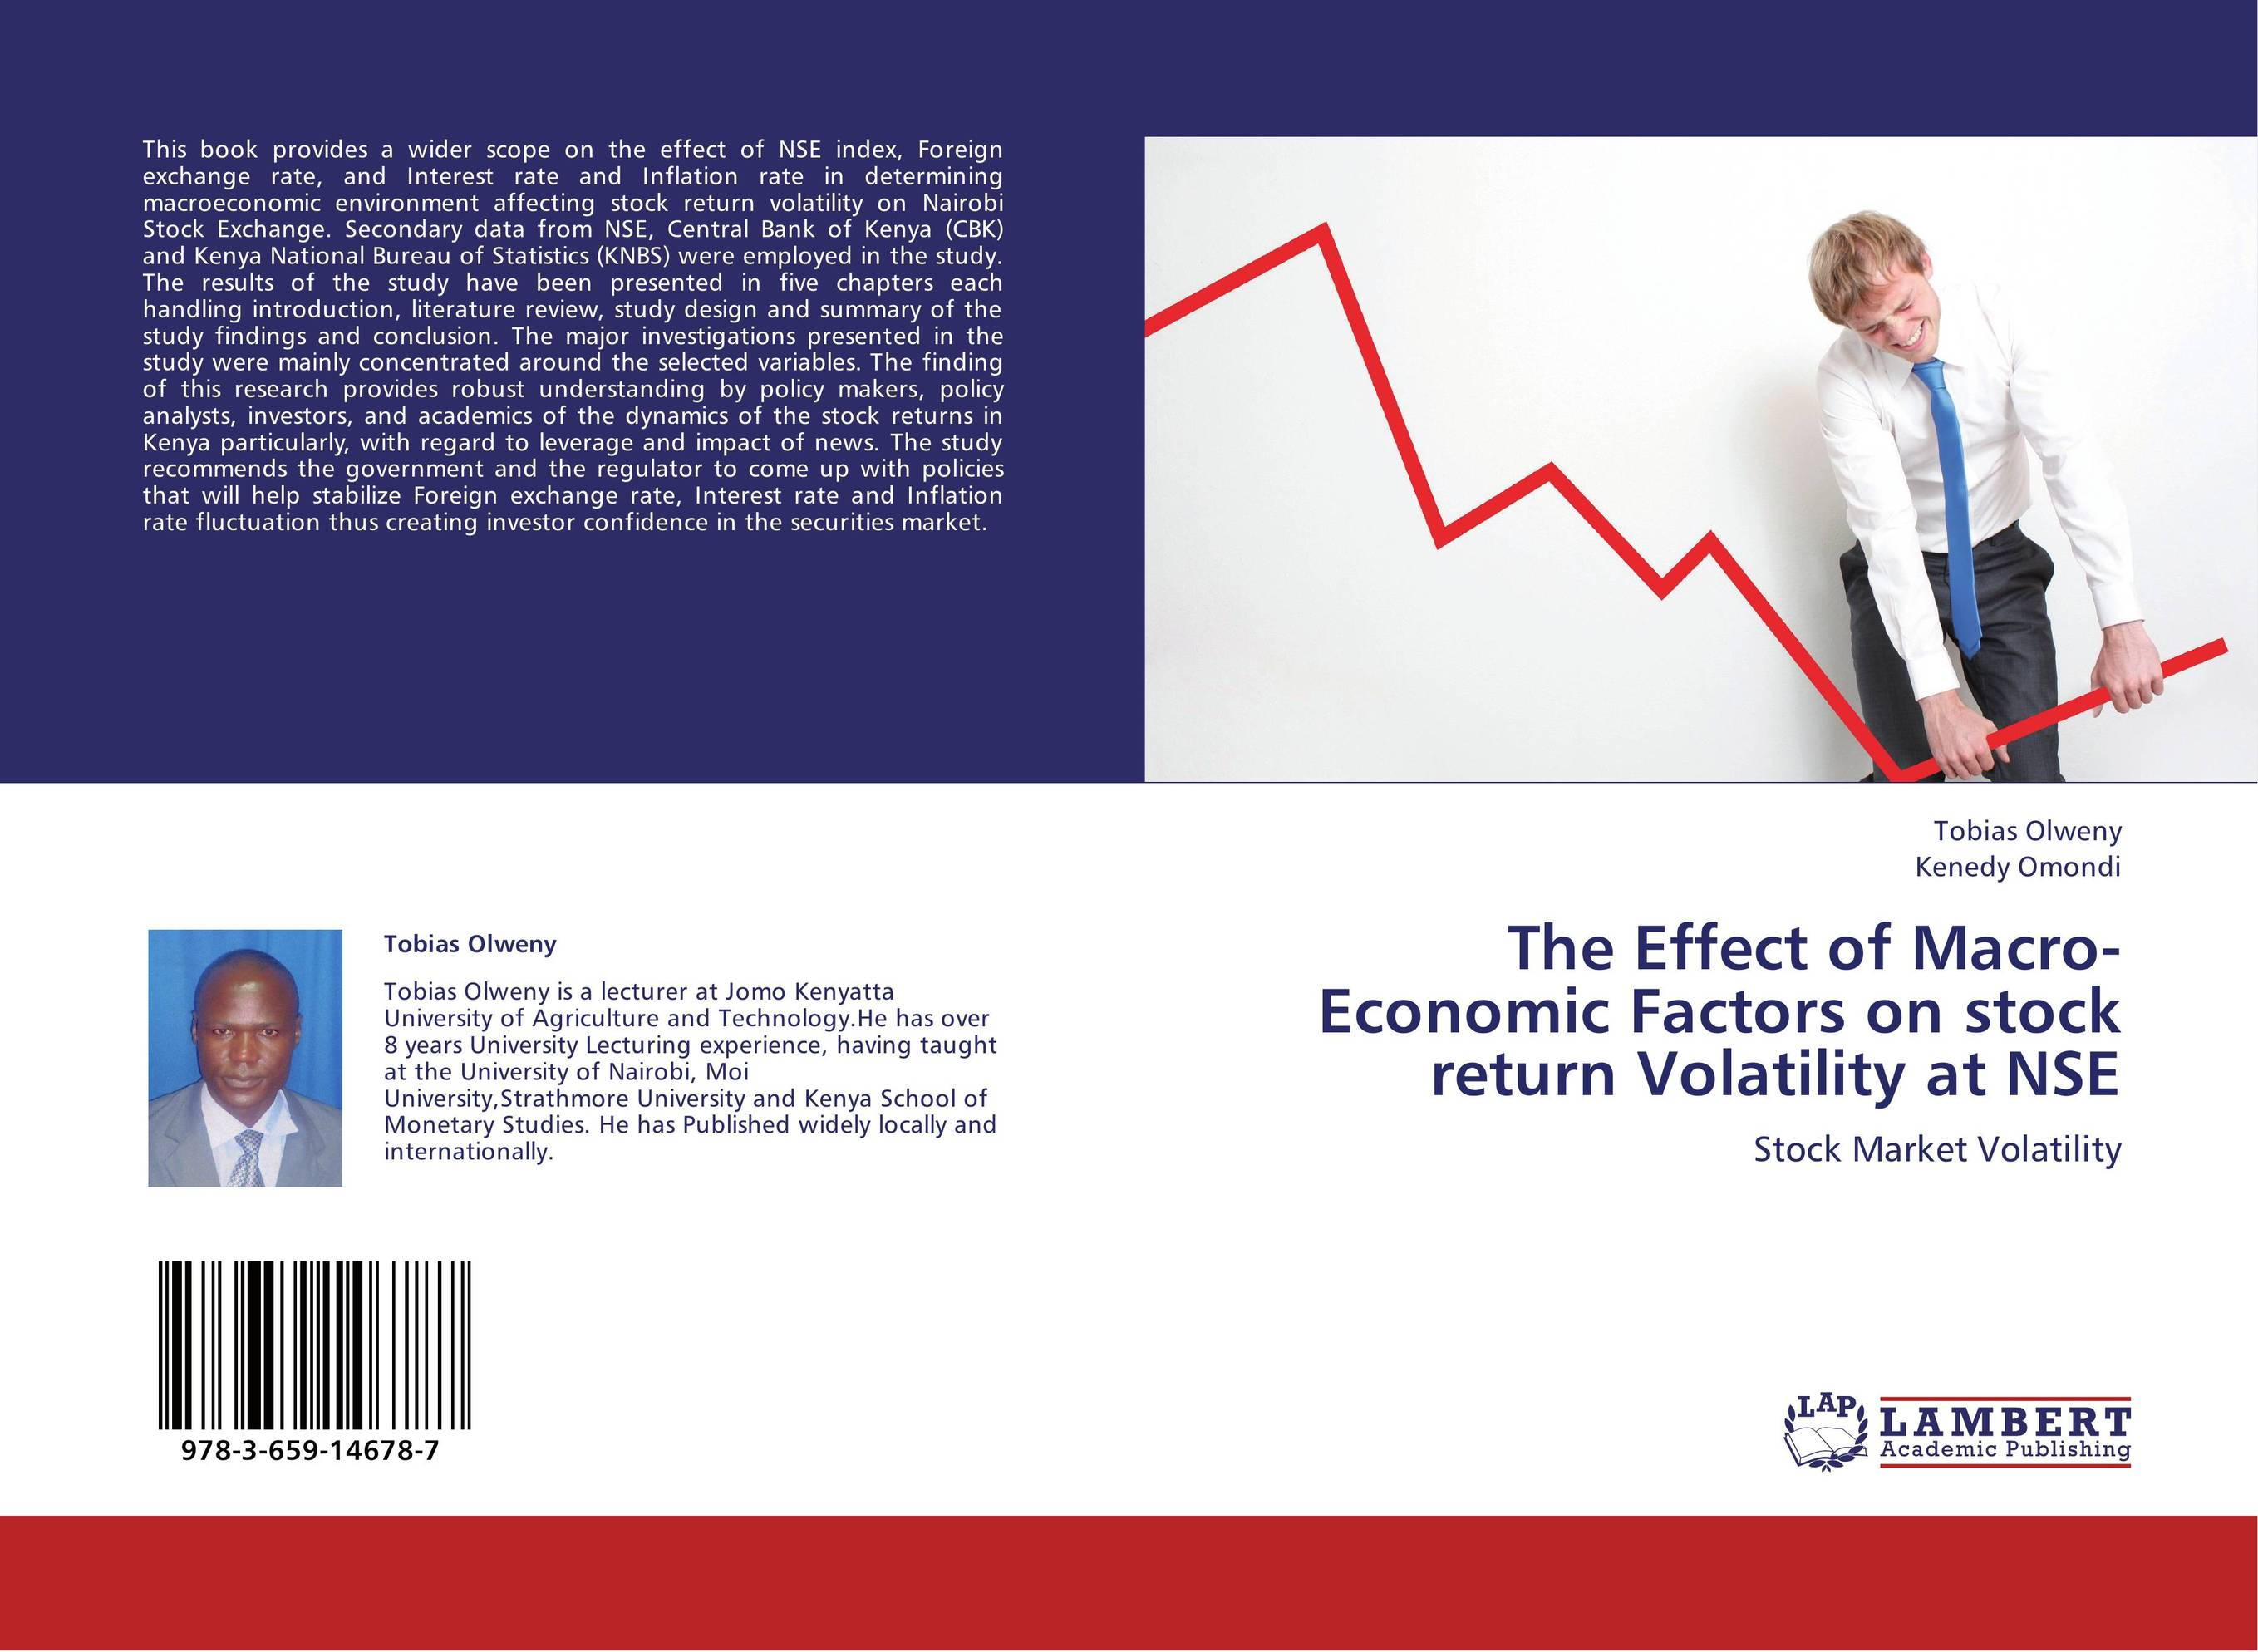 an analysis of the impact of remittances and institutions on output growth volatility in west africa The impact of remittances on economic growth:  to the impact of remittances on economic growth,  increase the growth rate by reducing output volatility.